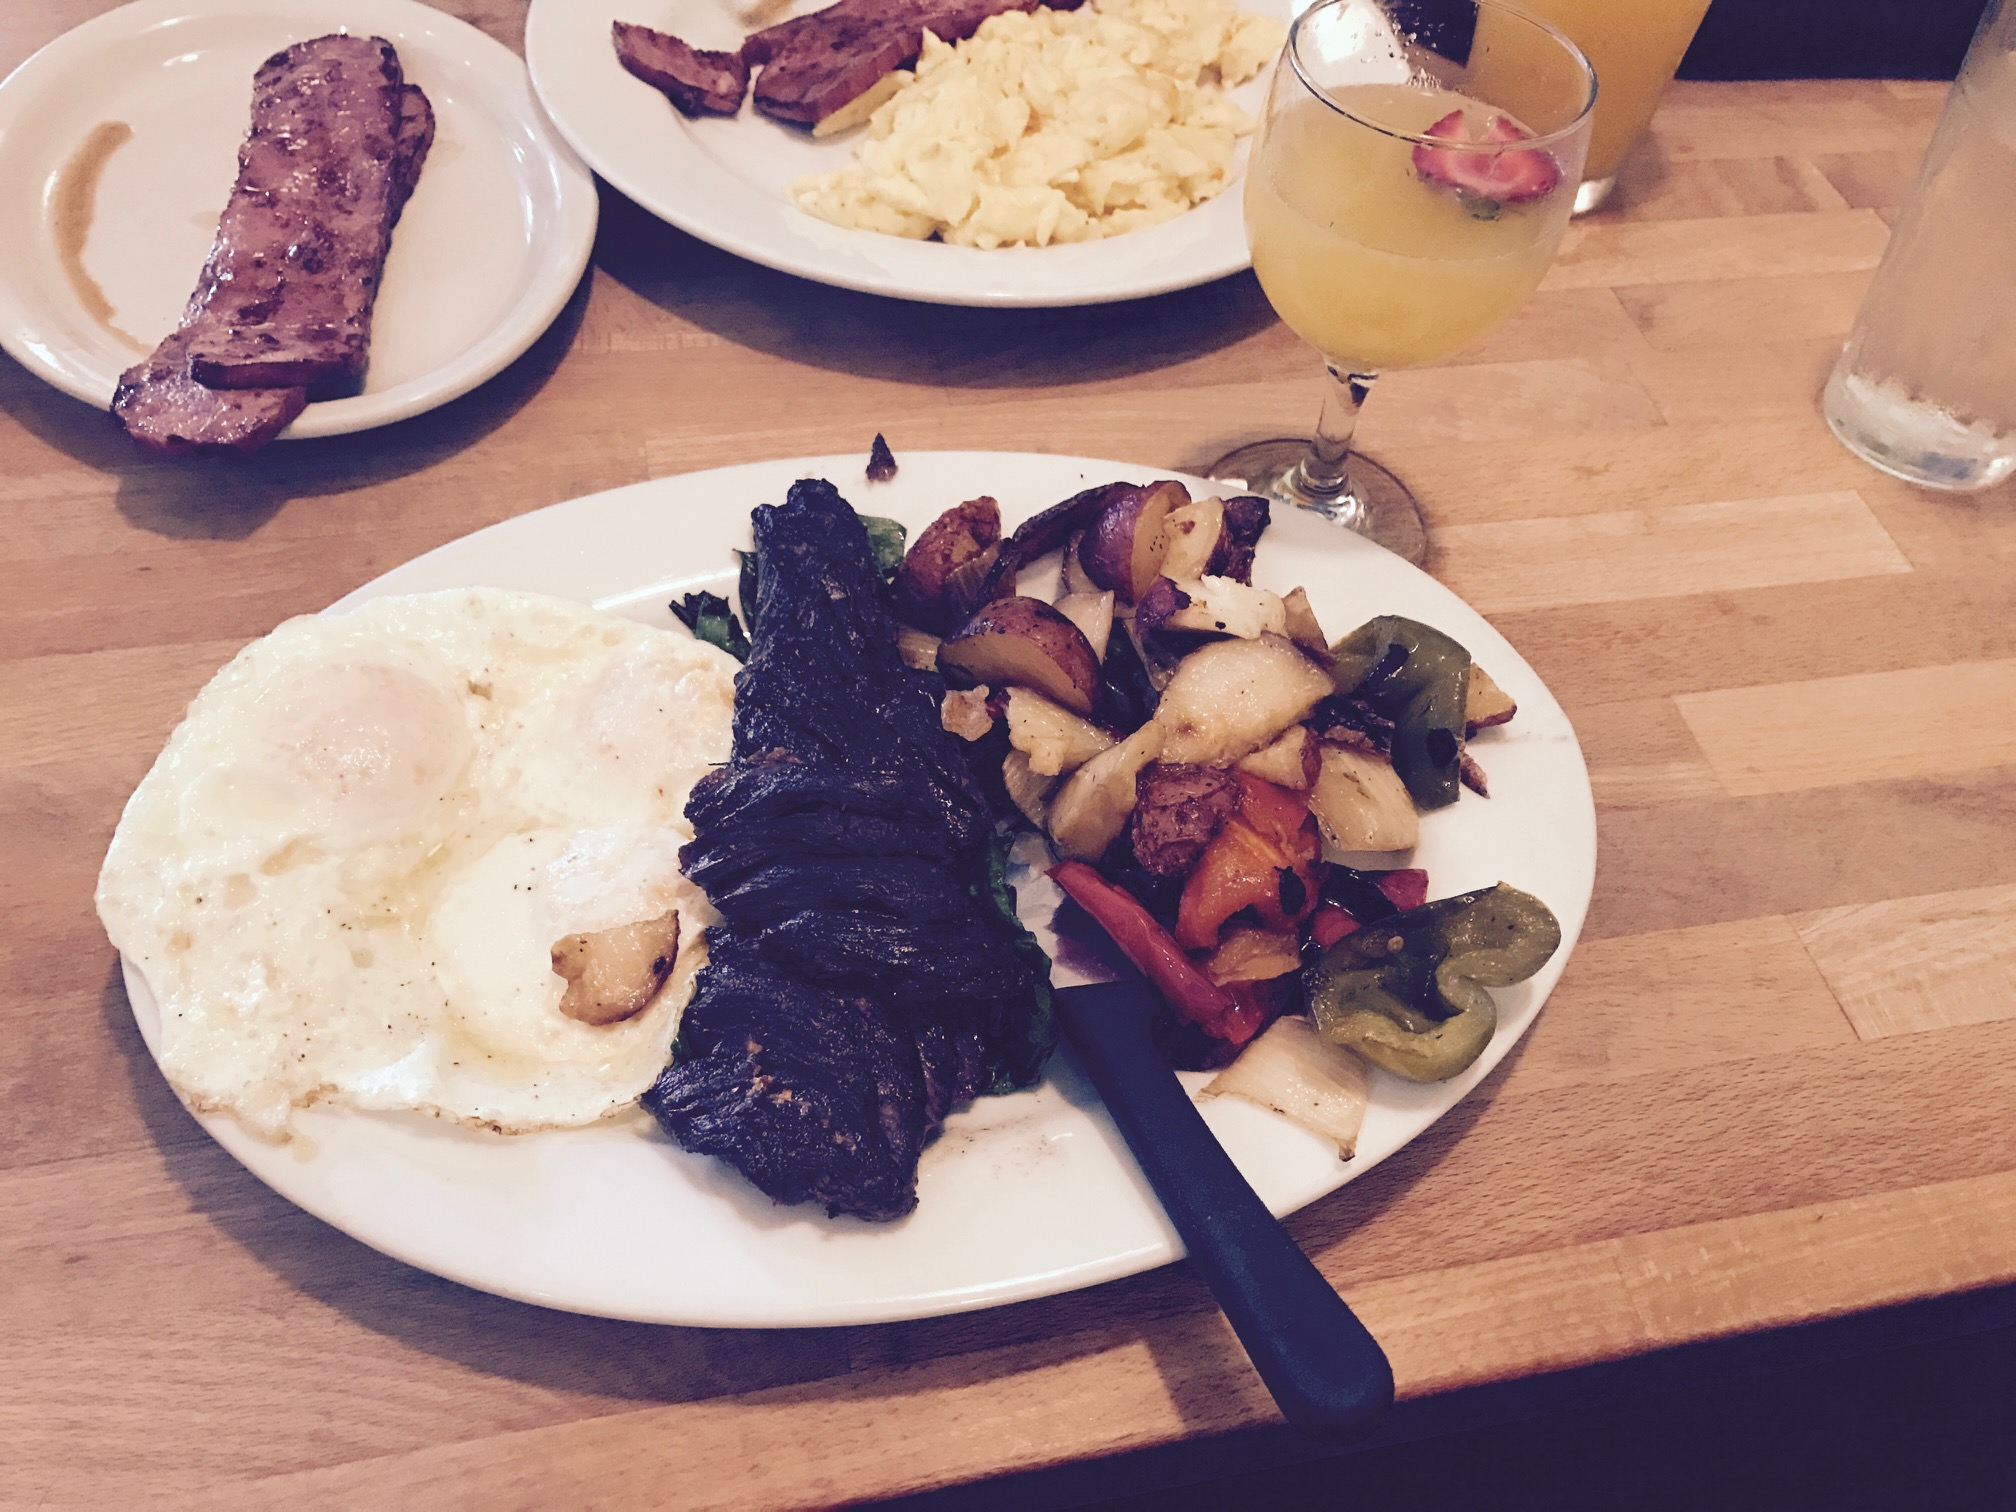 Steak & eggs with a cheeky mimosa